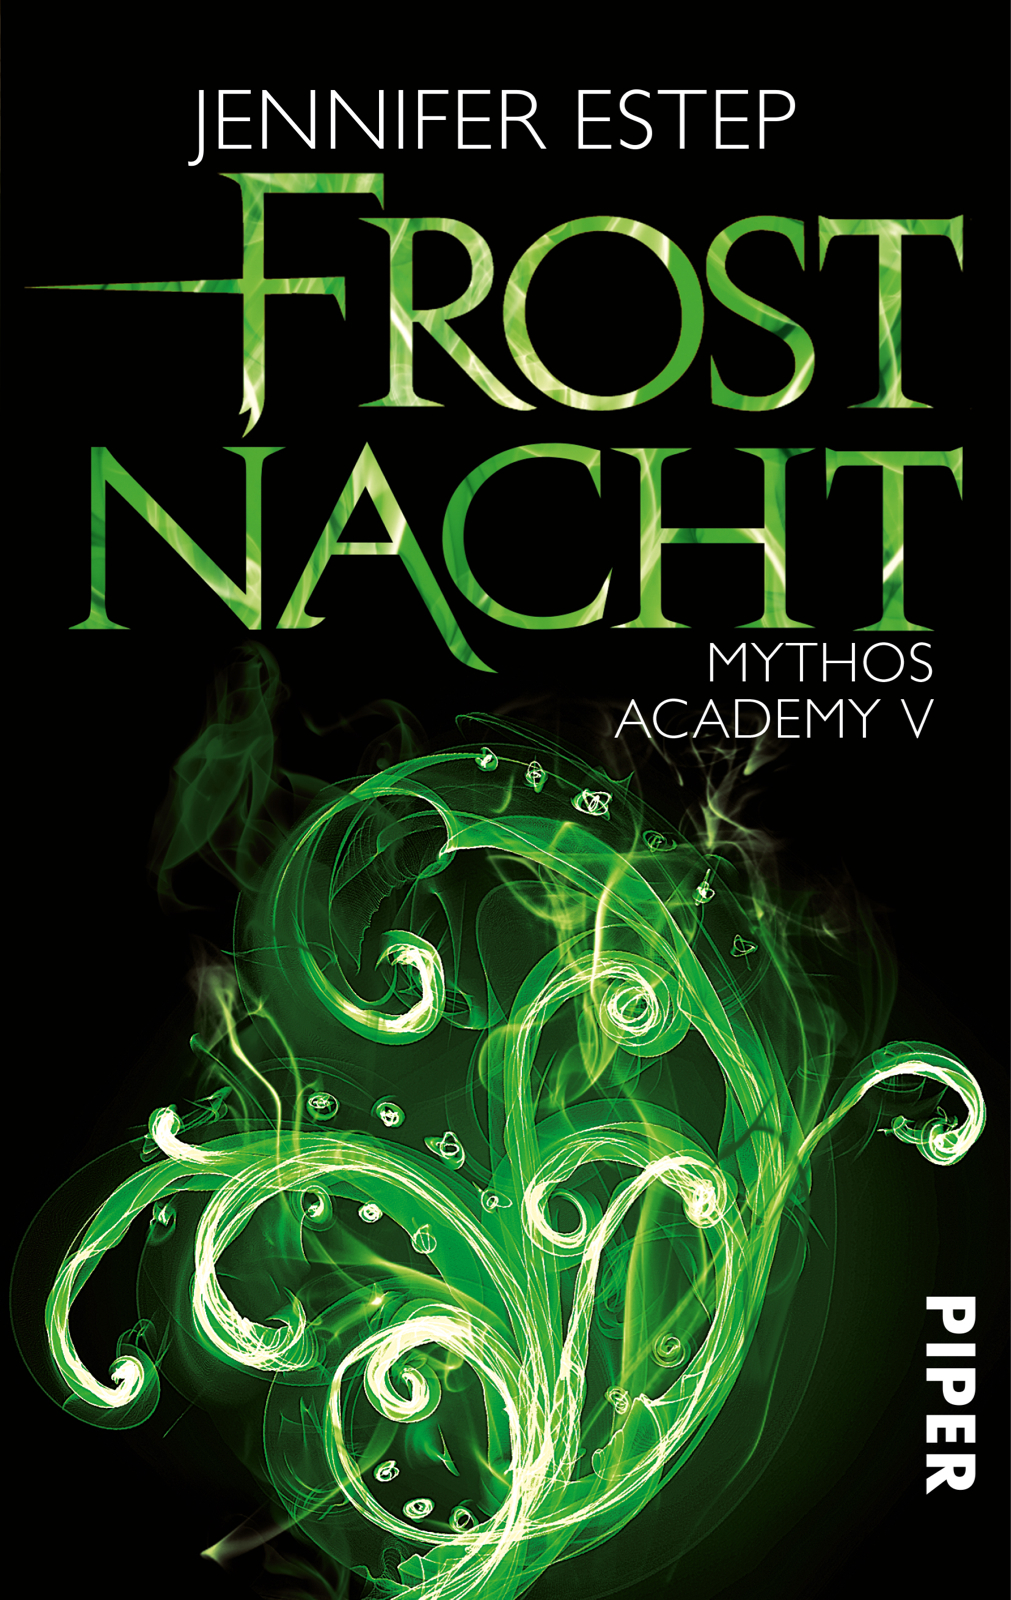 http://nothingbutn9erz.blogspot.co.at/2016/01/frostnacht-jennifer-estep-piper-rezension.html